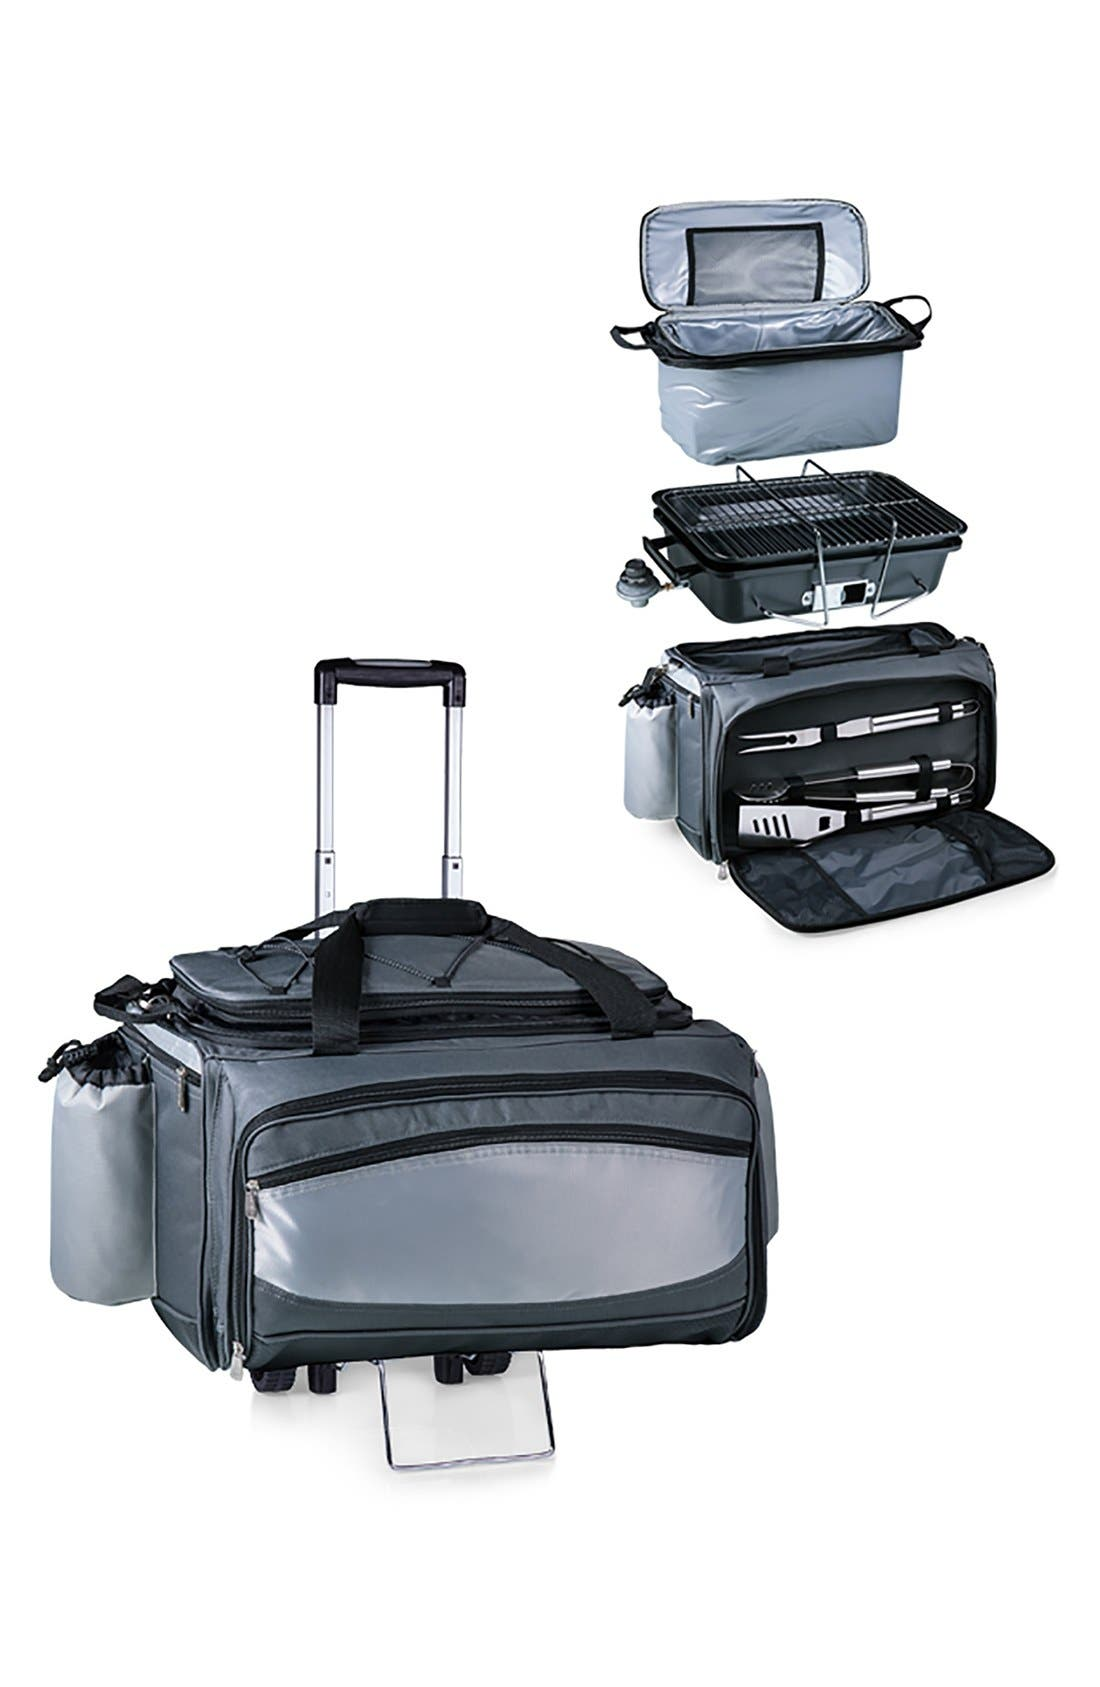 'Vulcan' Barbecue Grill & Cooler Trolley,                         Main,                         color, 001